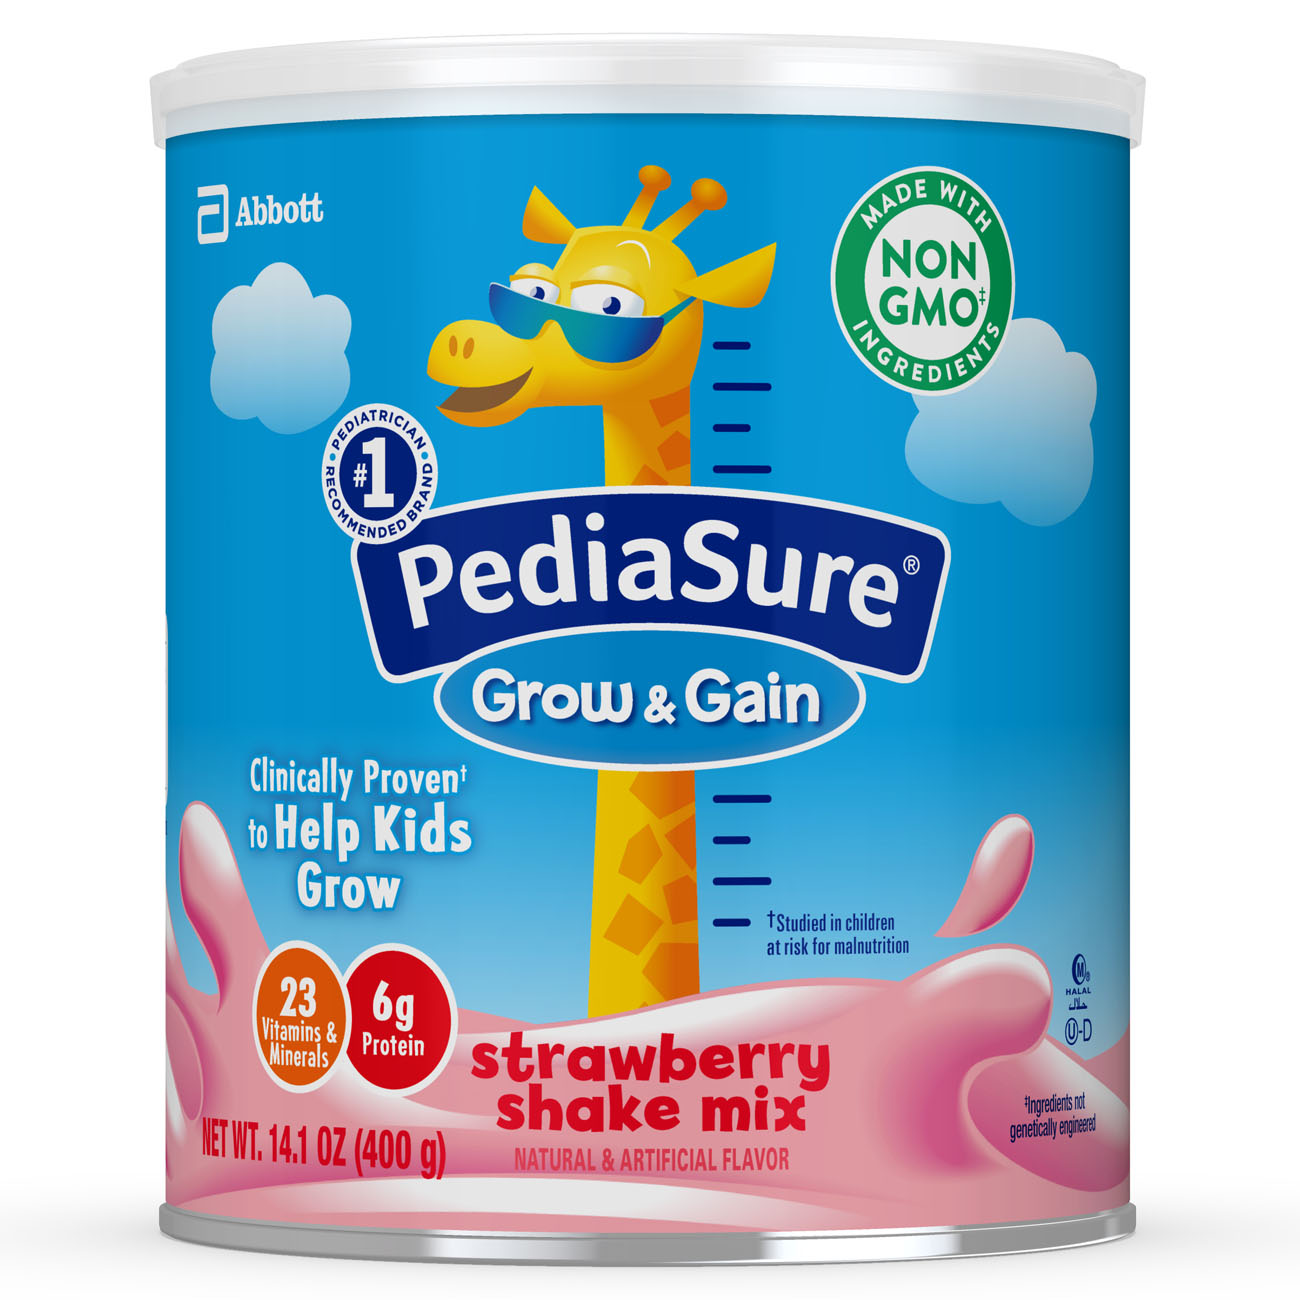 PediaSure Grow & Gain Shake Mix Strawberry 14.1 oz Cans (Pack of 6)